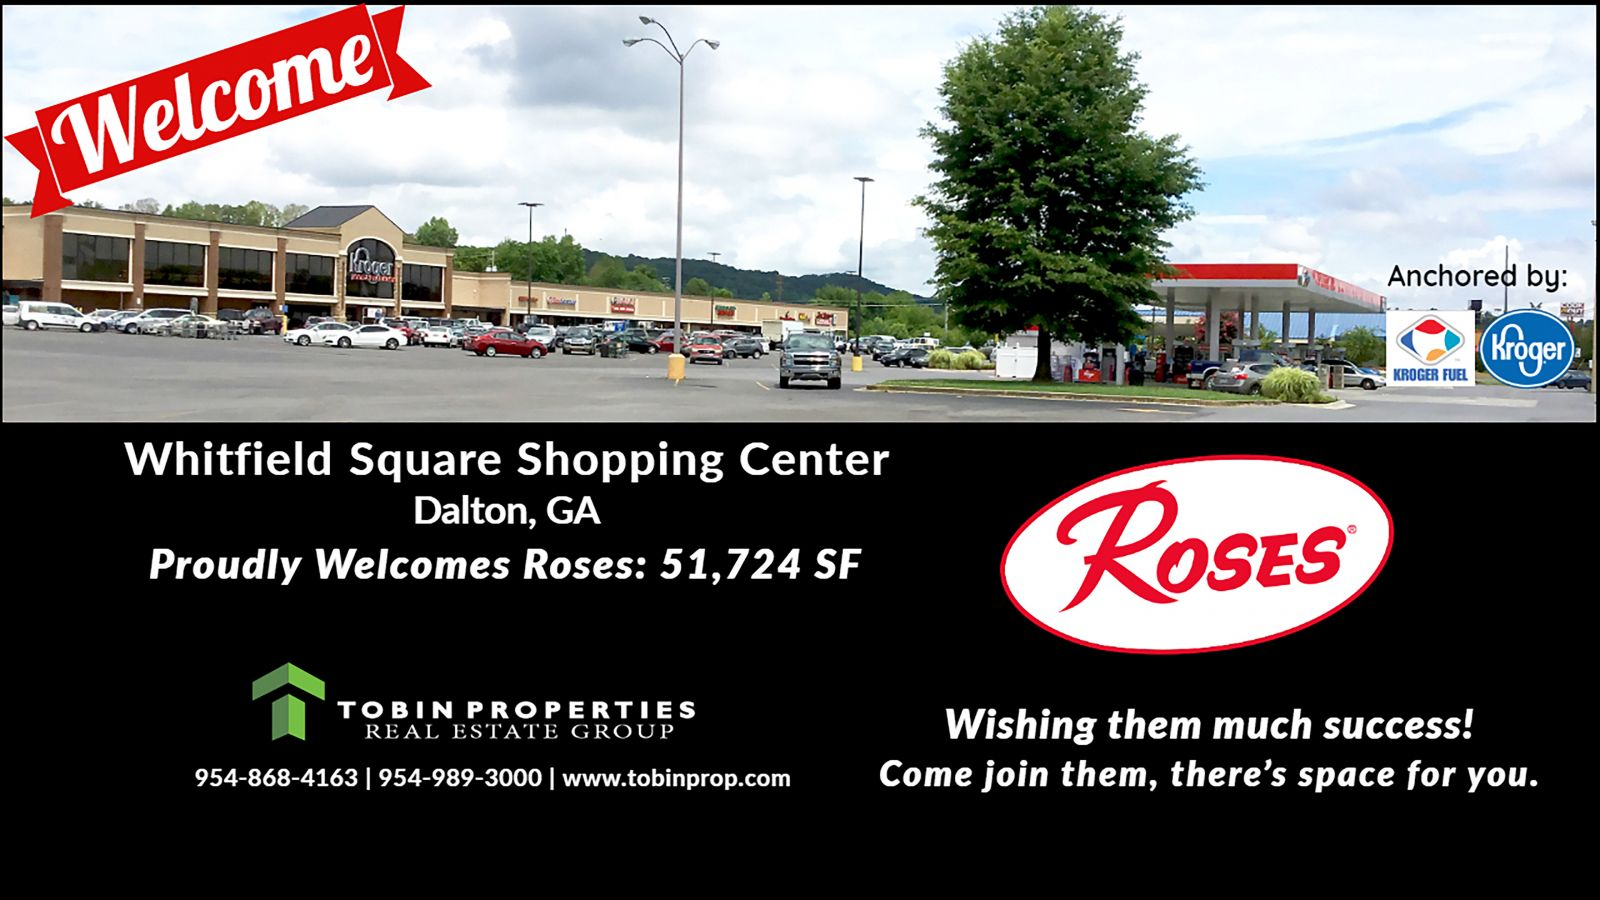 "Image of new tenant welcoming ""Roses"" at Whitfield Square Shopping Center."